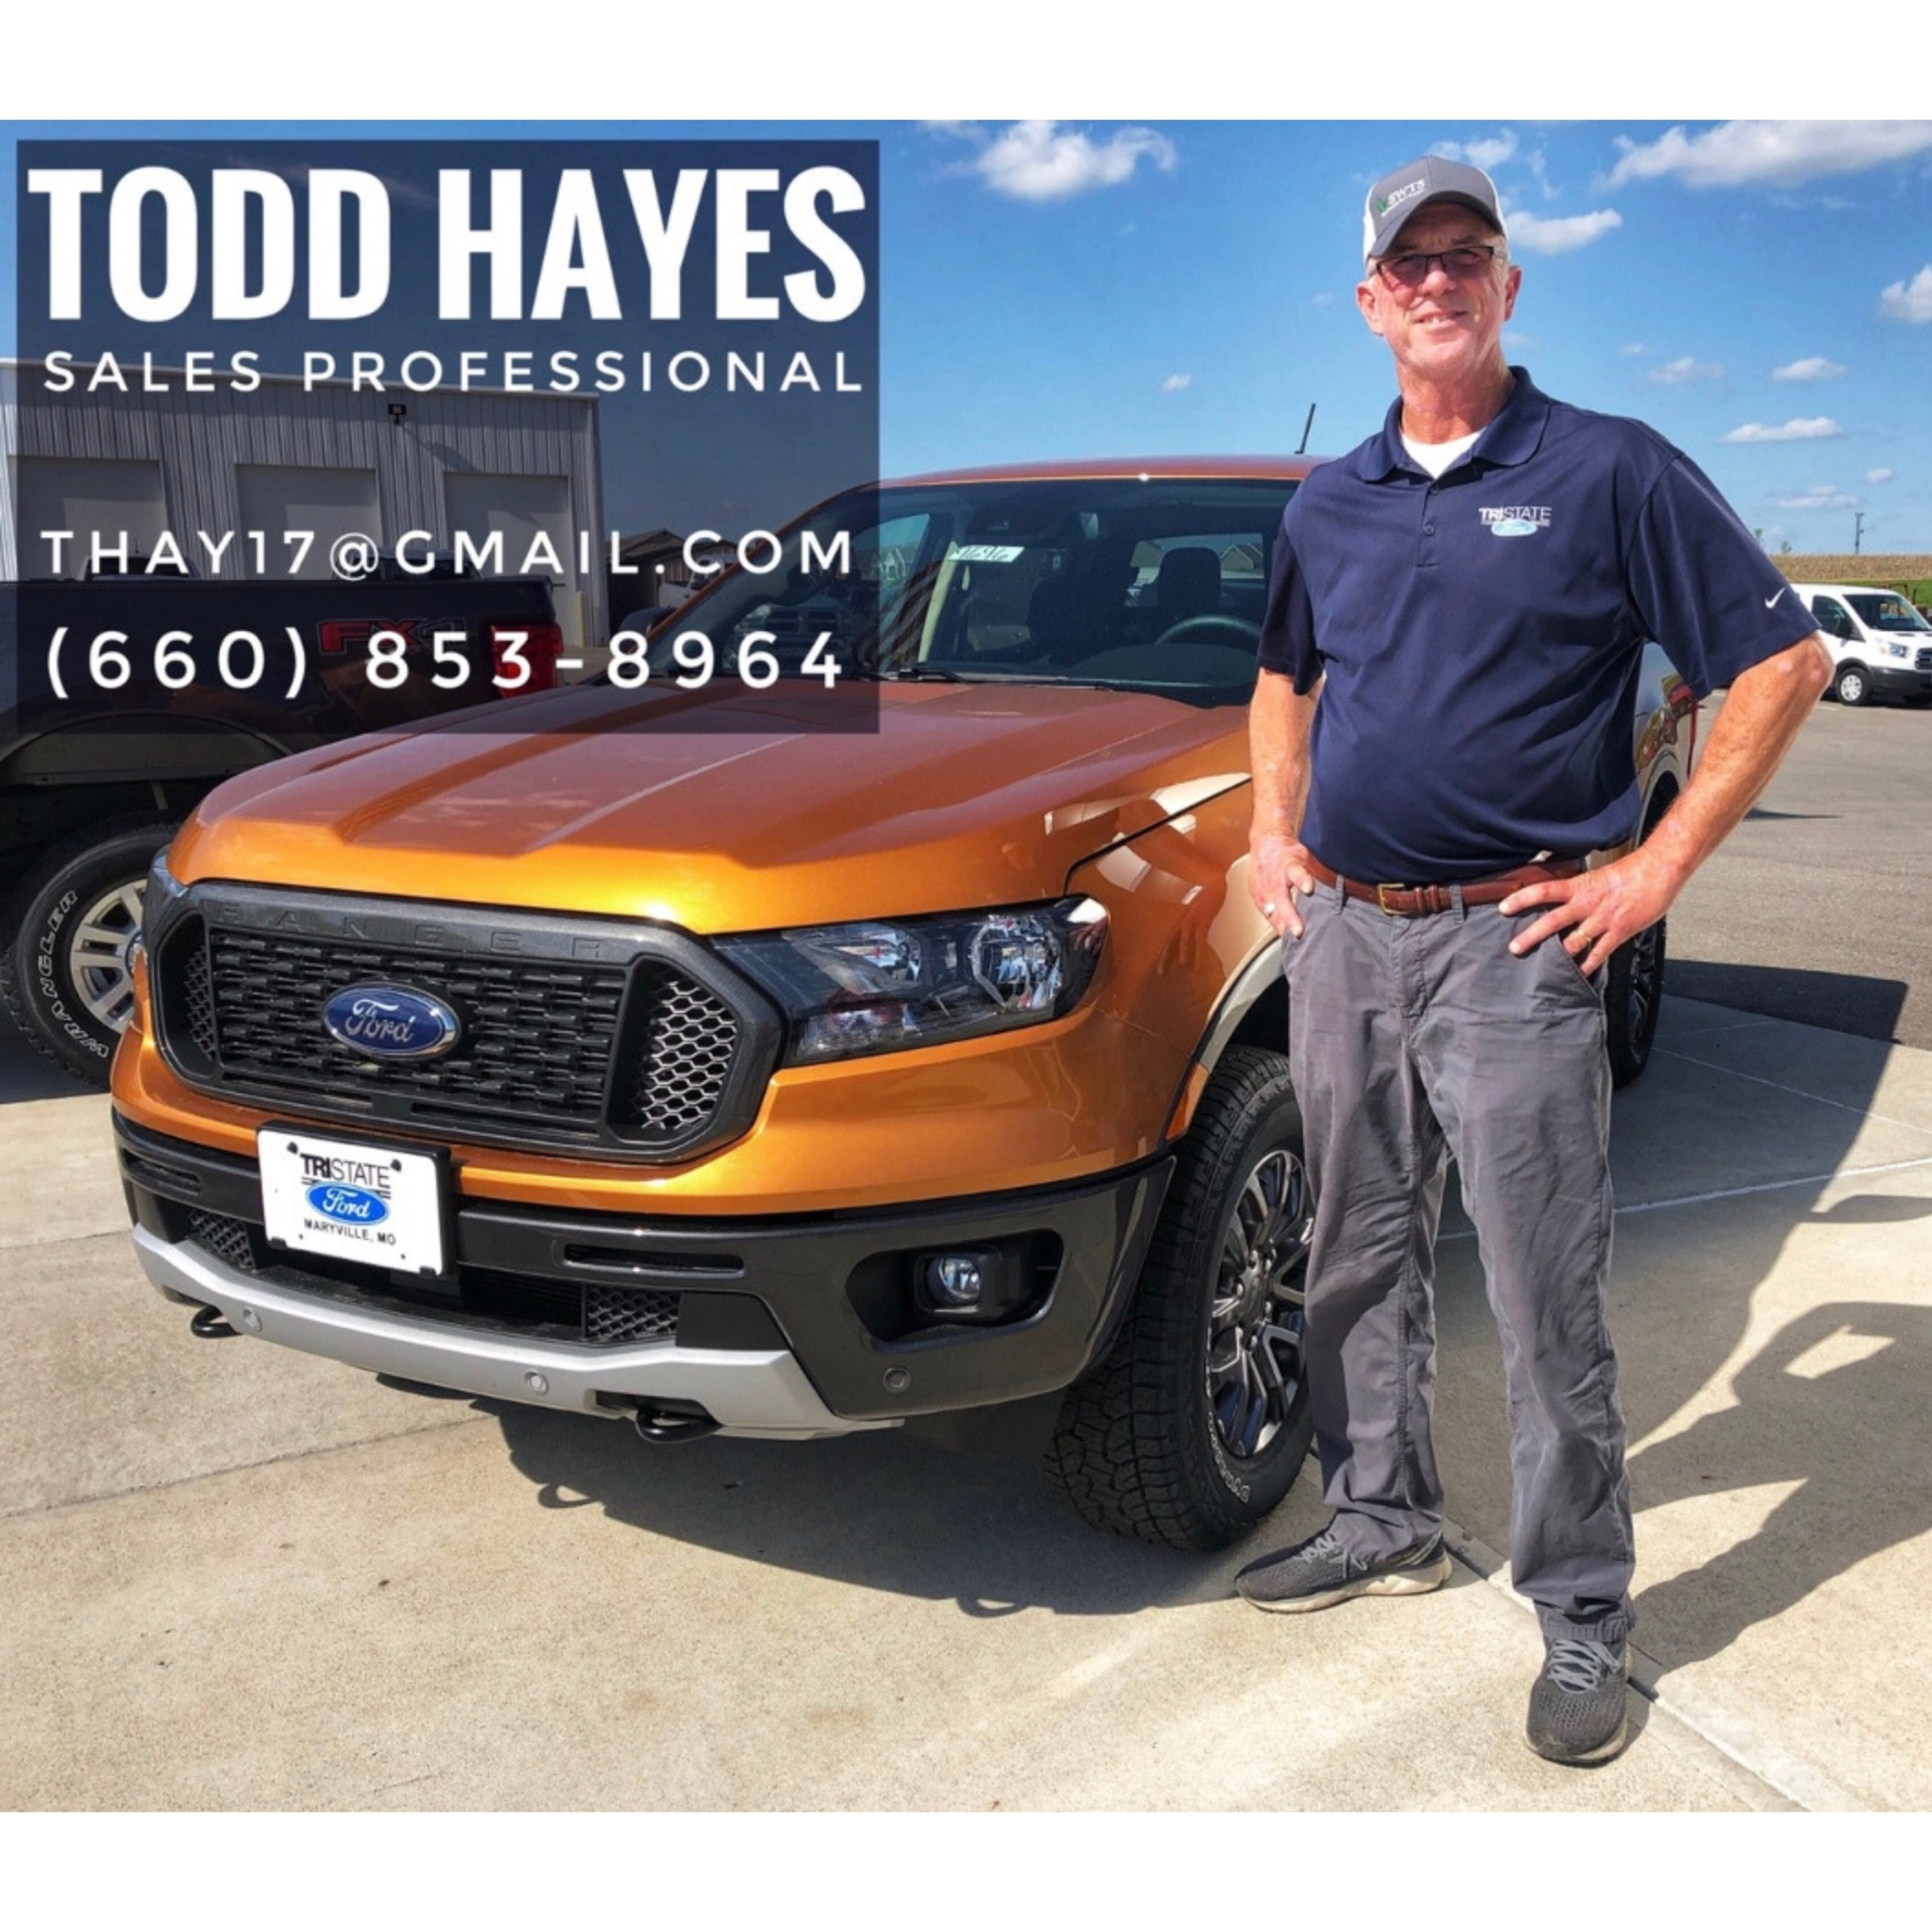 Tri State Ford Maryville Mo >> Meet Our Tri State Team! | Tri-State Ford